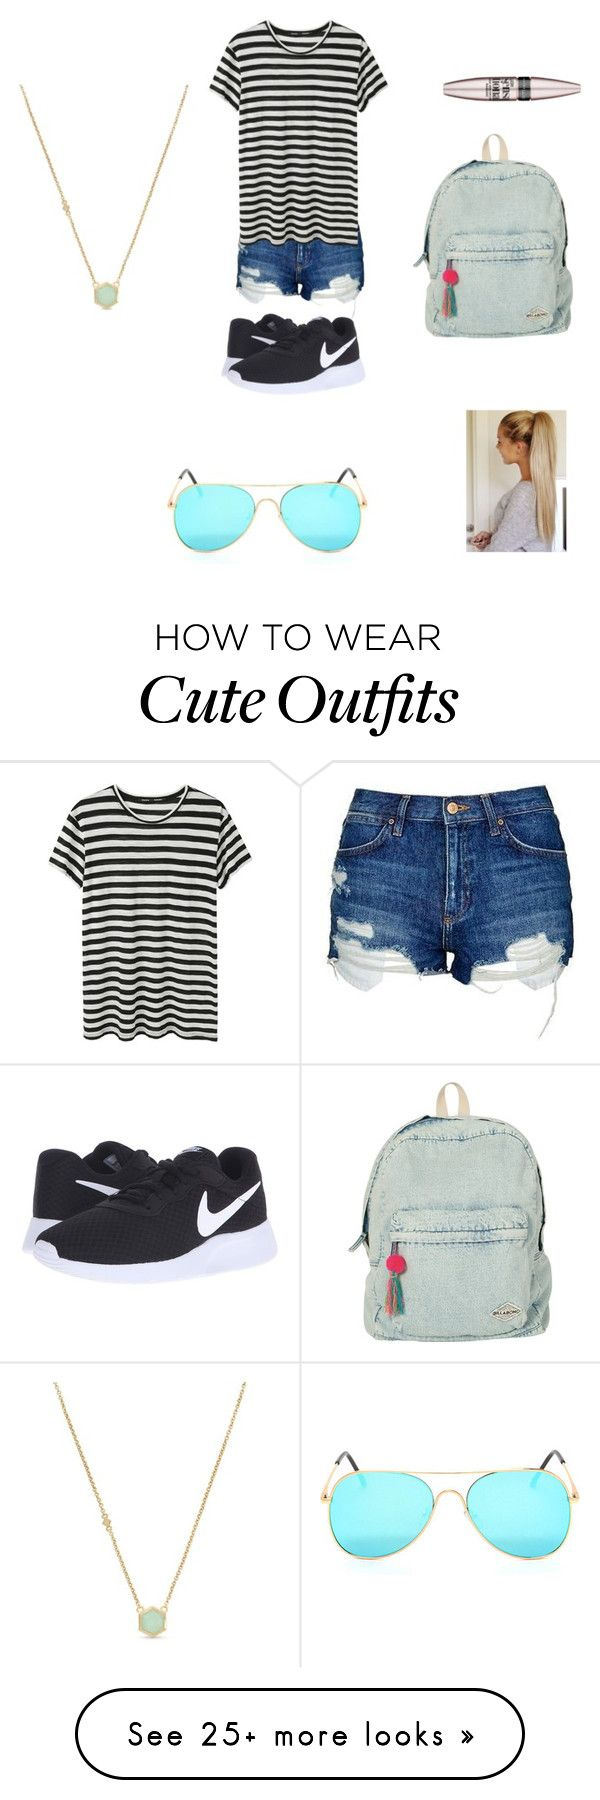 """Lazy cute outfit"" by lkr82203 on Polyvore featuring Topshop, Proenza Schouler, NIKE, Cole Haan, Billabong and Maybelline"